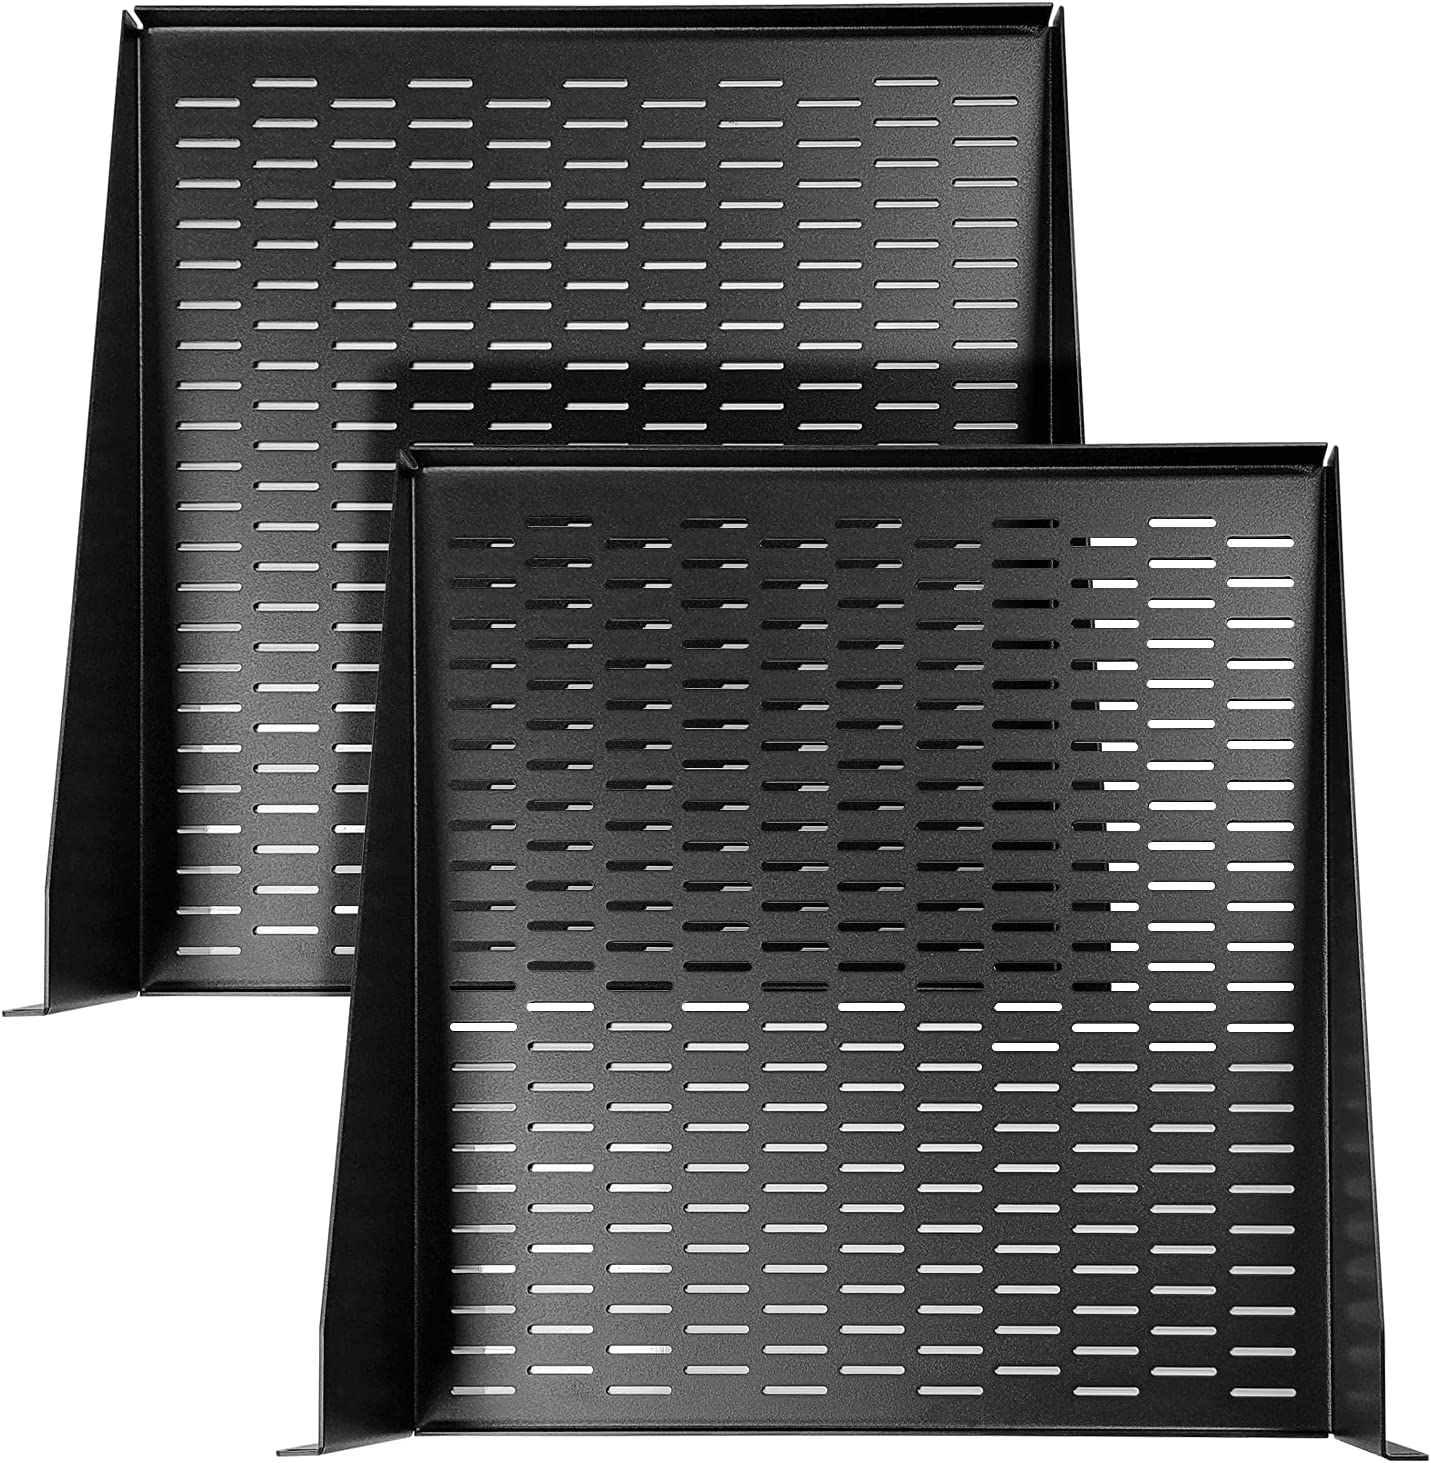 AxcessAbles 2U Vented Cantilever Rack supreme 19 Inch Equipment Tray 40% OFF Cheap Sale for